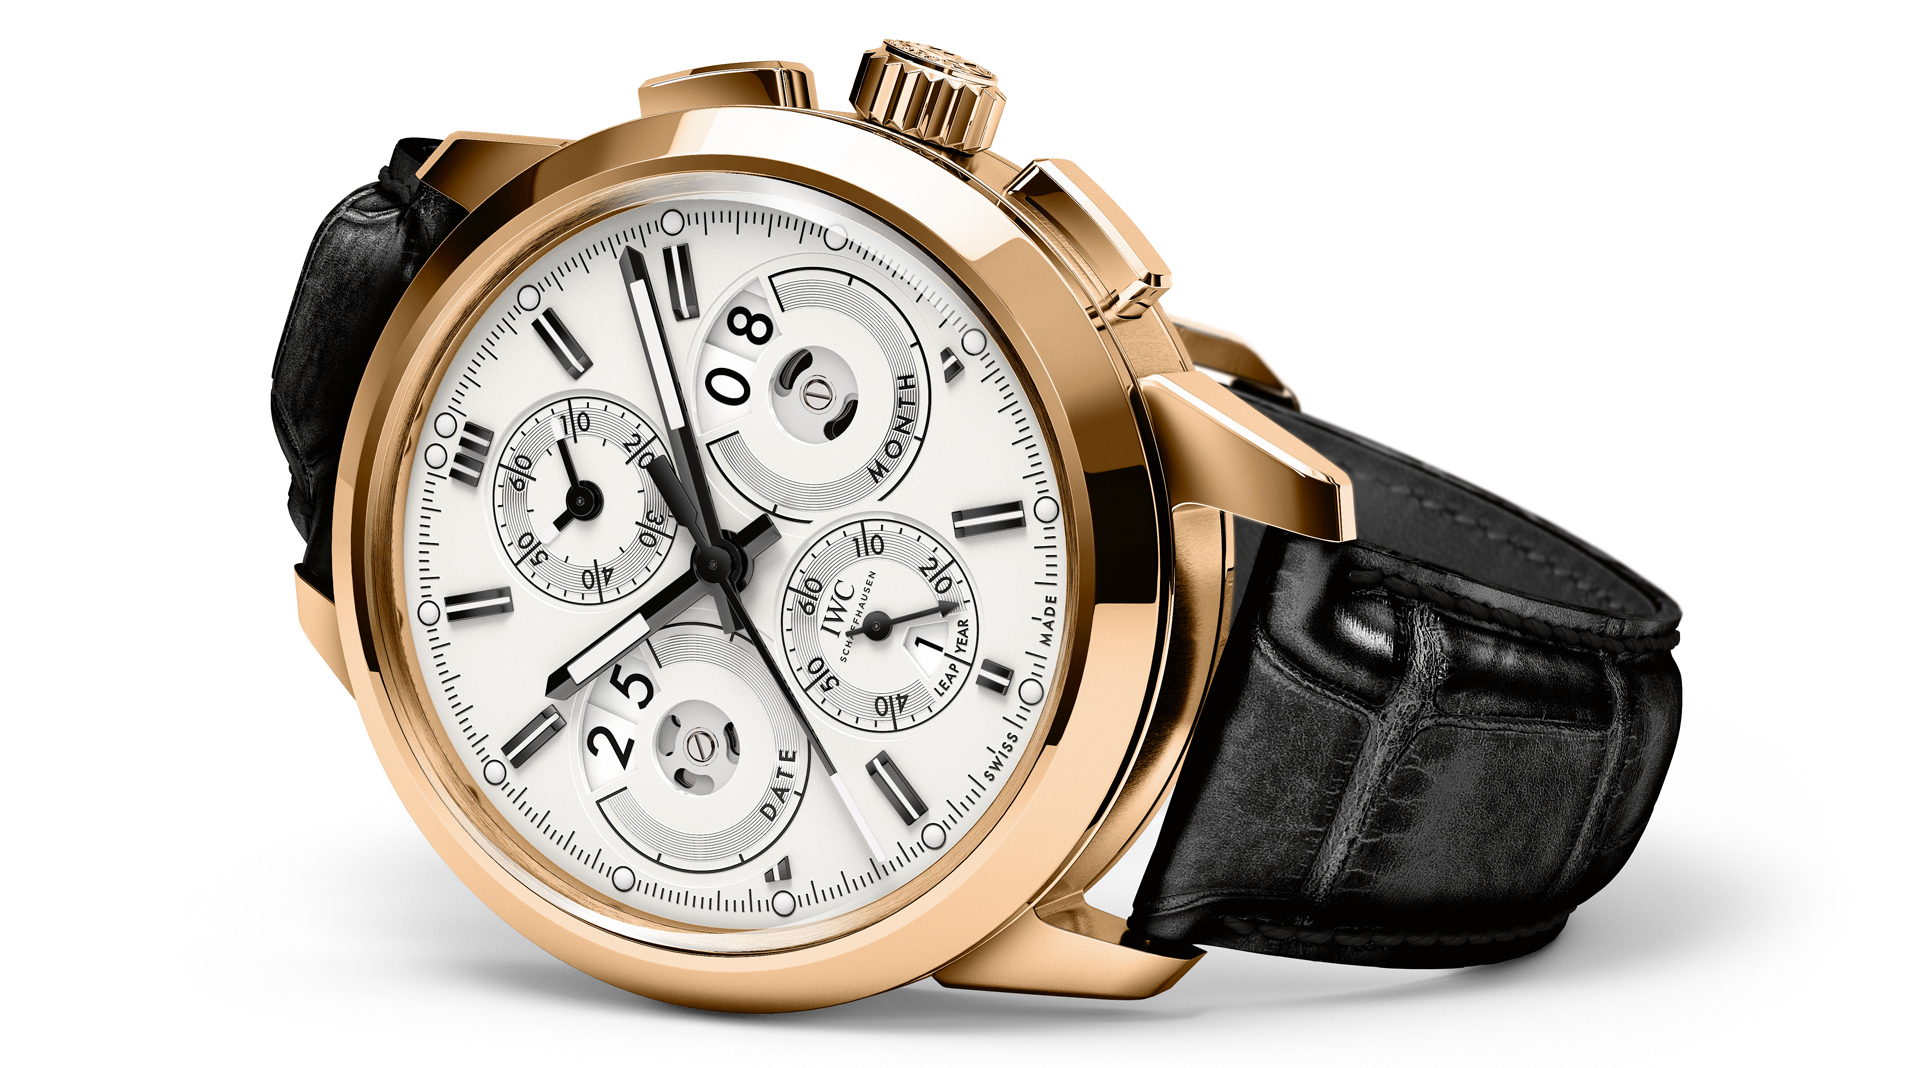 IWC Ingenieur Perpetual Calendar Digital Date-Month side